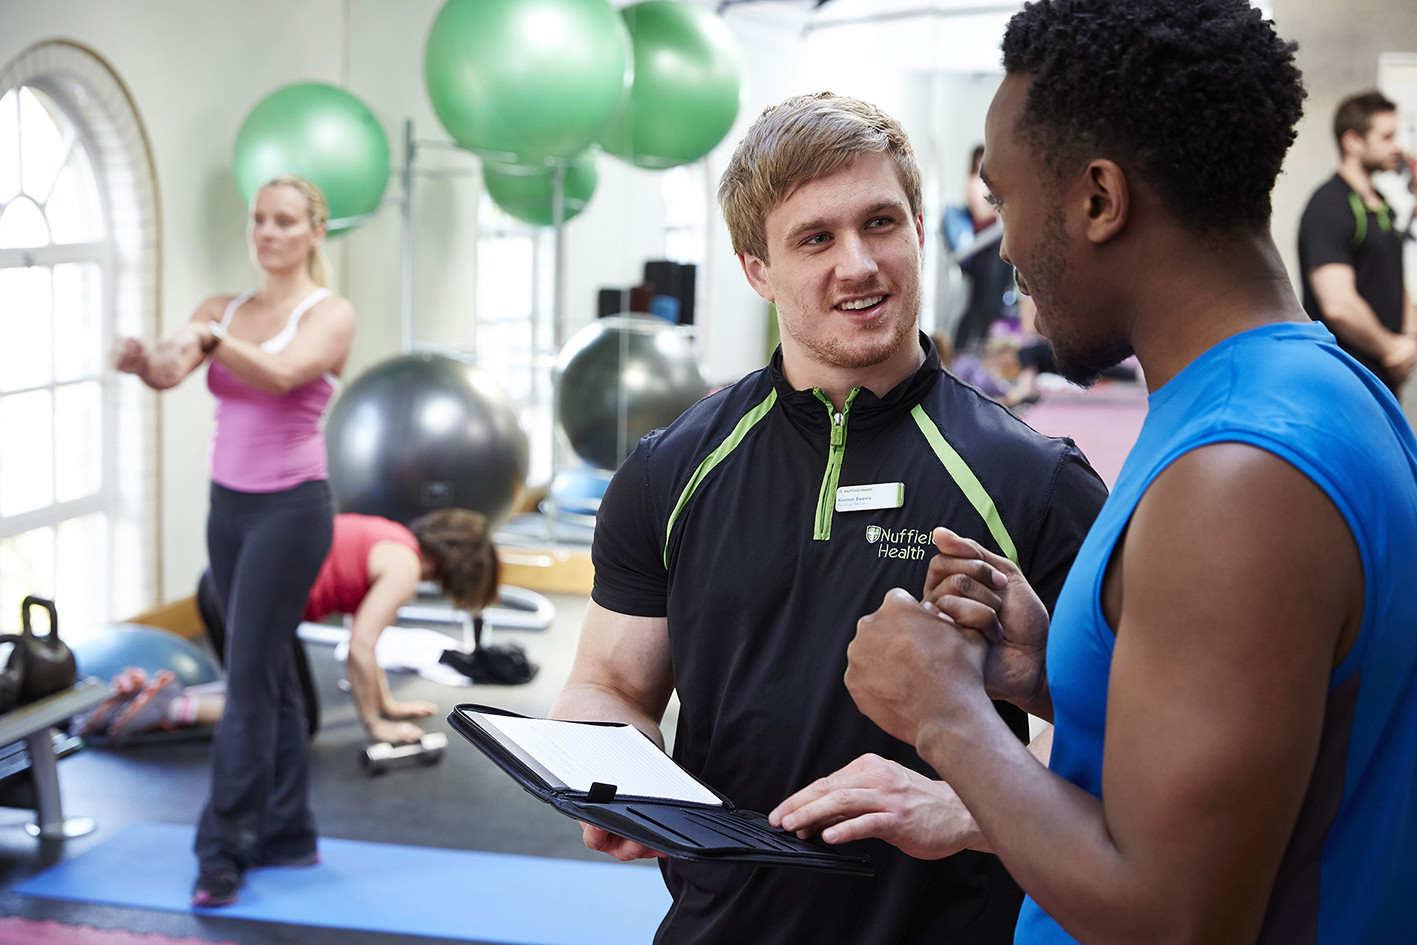 Nuffield Health Fitness & Wellbeing Gym in Gosforth is offering a Seven Day Trial & Mini Health MOT to help tackle inactivity and kick-start the journey to a healthier you.